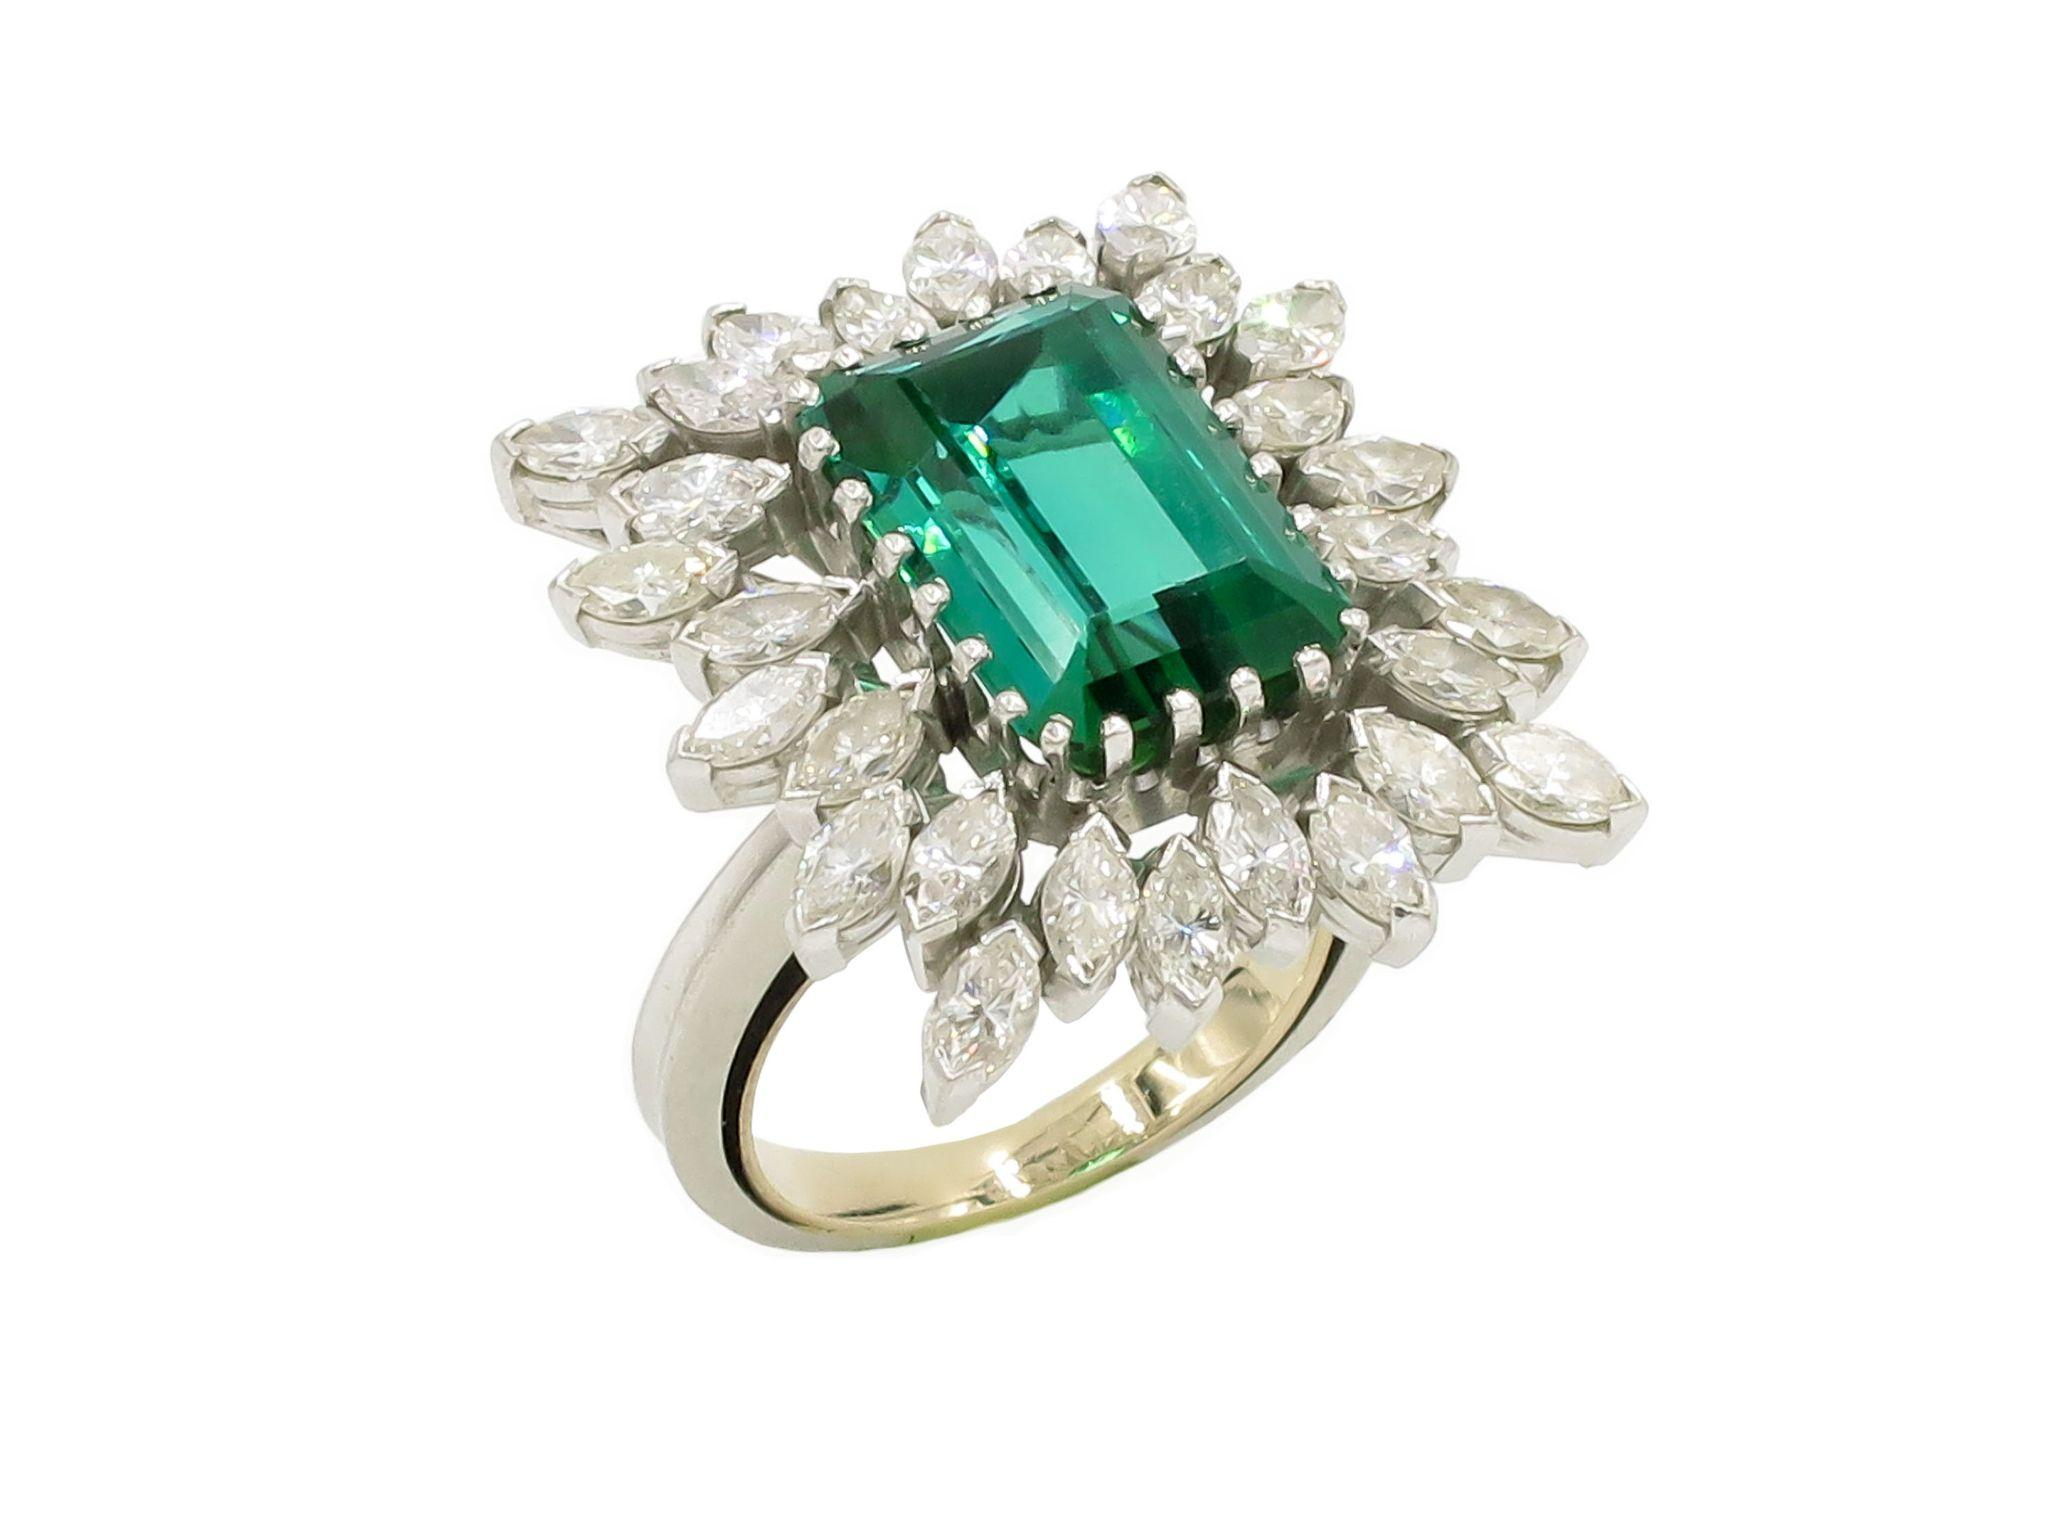 Platinum green tourmaline and diamond cocktail ring from for Estate jewelry burlington vt